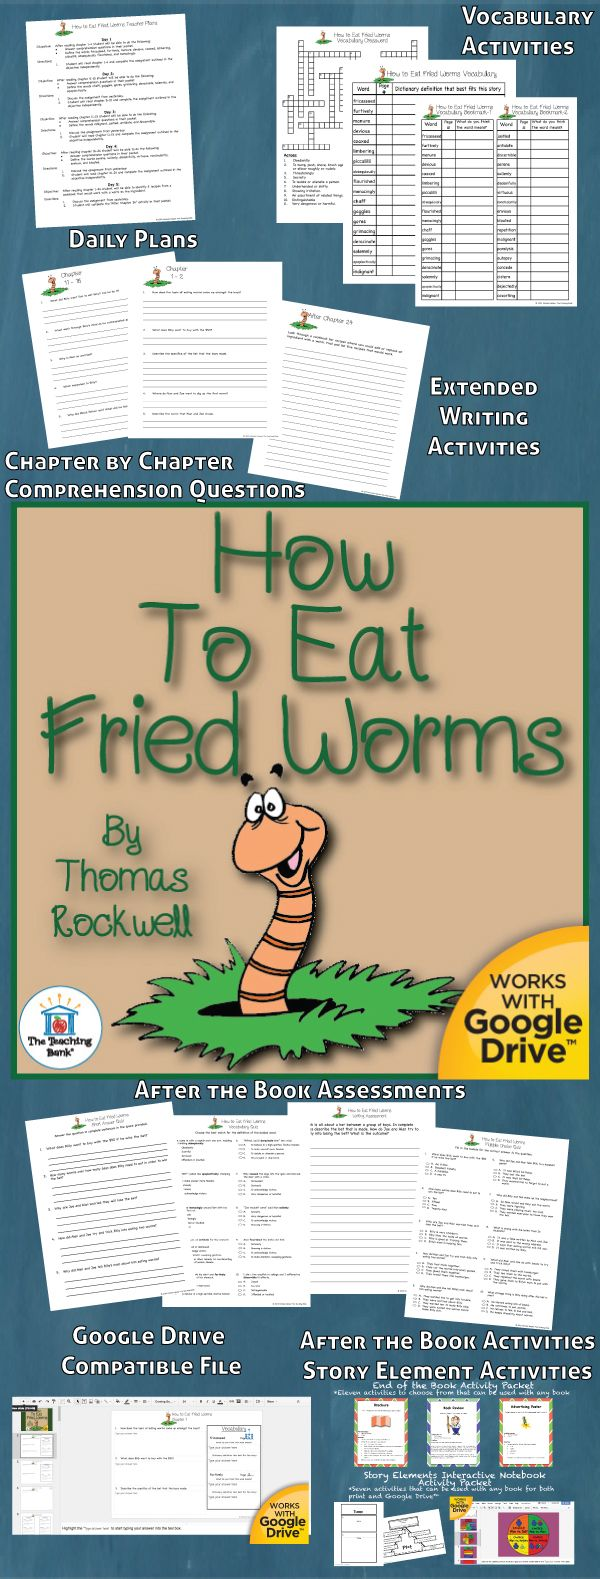 How To Eat Fried Worms Novel Study Is Amon Core Standard Aligned Book  Unit To